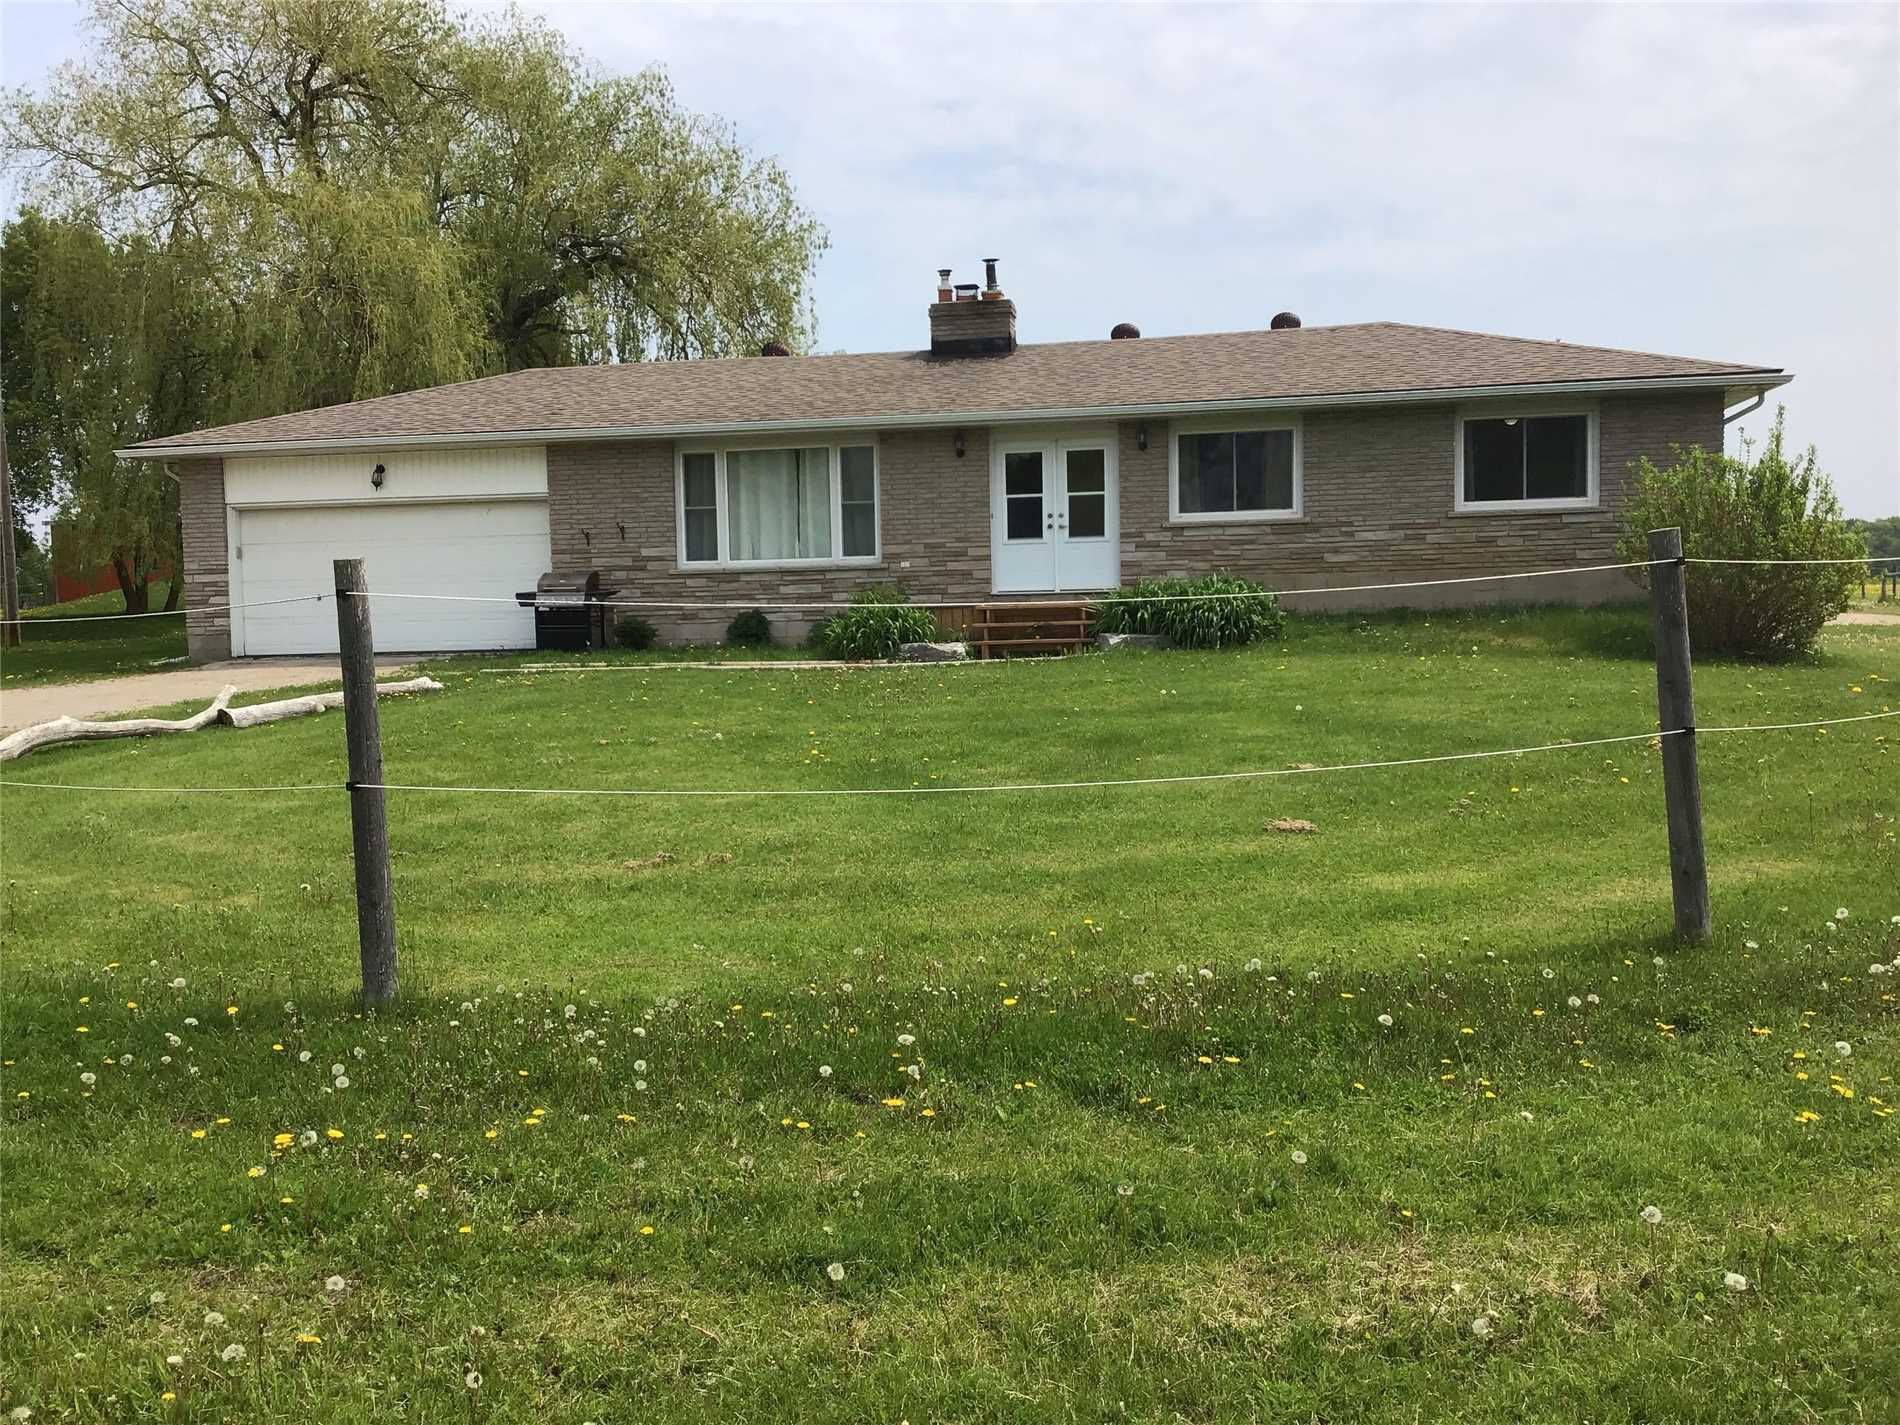 Fantastic Opportunity To Move In To This Peaceful Country Bungalow Home.  3 + 1 Bedroom, 2 Bathroom, Newly Renovated Upper Level. Large Master Bedroom And Ample Storage.   Home Is Located On 10 Acres Of Land.